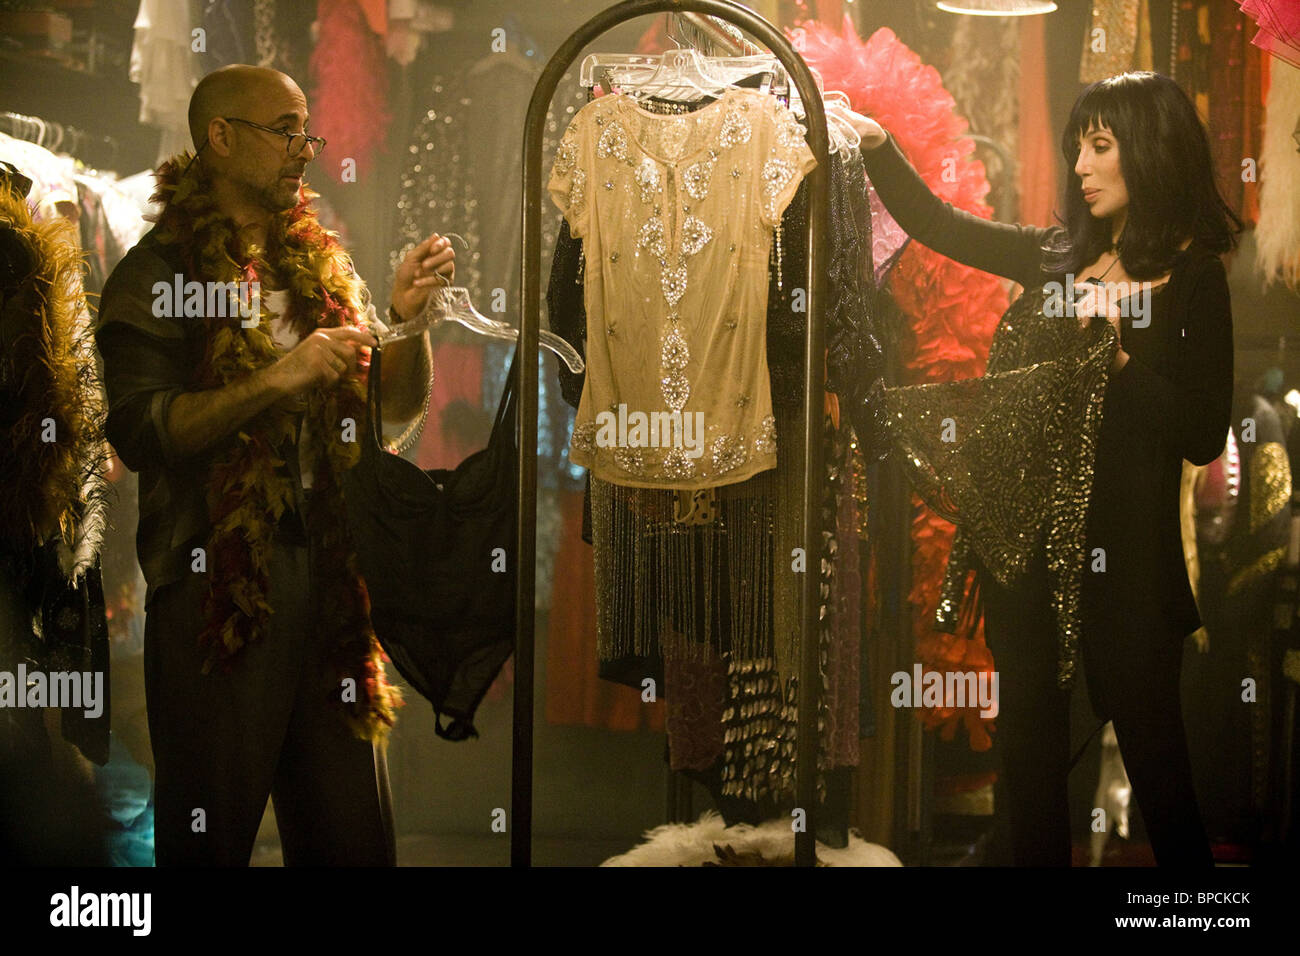 BURLESQUE (2010) CHER, STANLEY TUCCI STEVEN ANTIN (DIR) 006 MOVIESTORE COLLECTION LTD - Stock Image